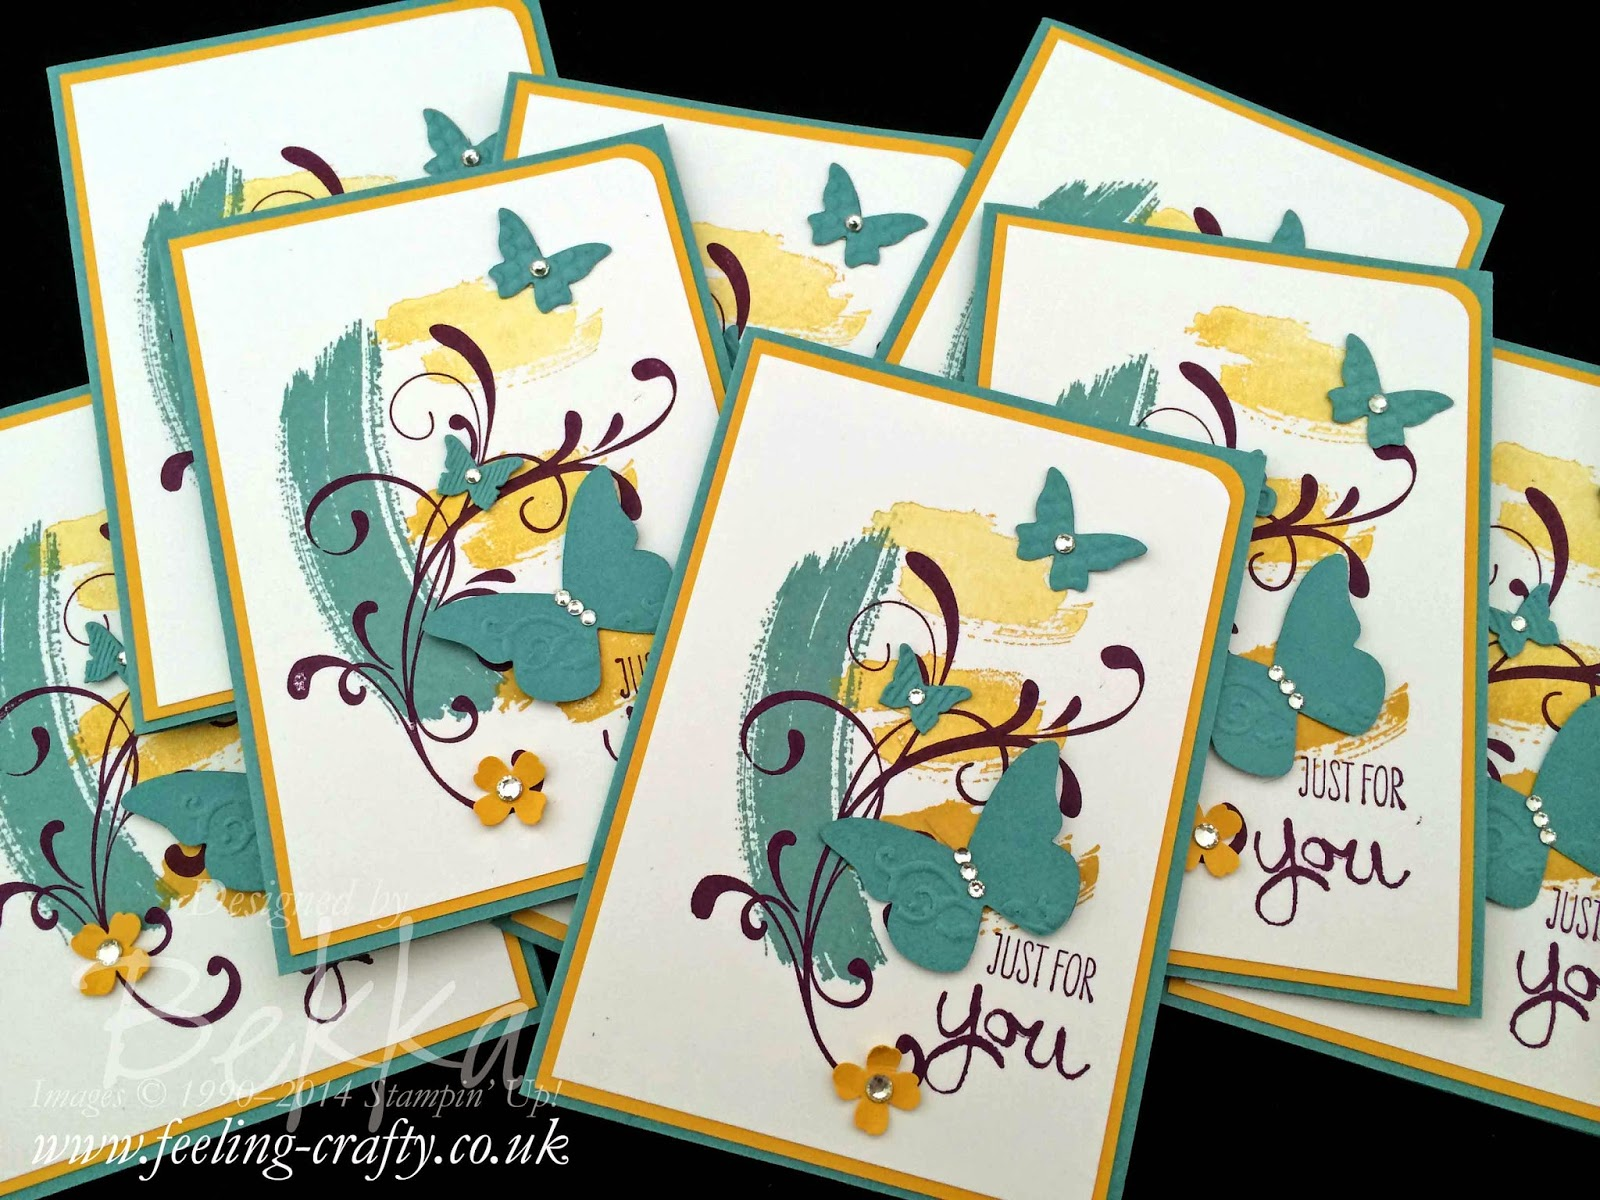 Work of Art Butterfly cards by Stampin' Up! UK Independent Demonstrator Bekka  - get your Stampin' Up! goodies here